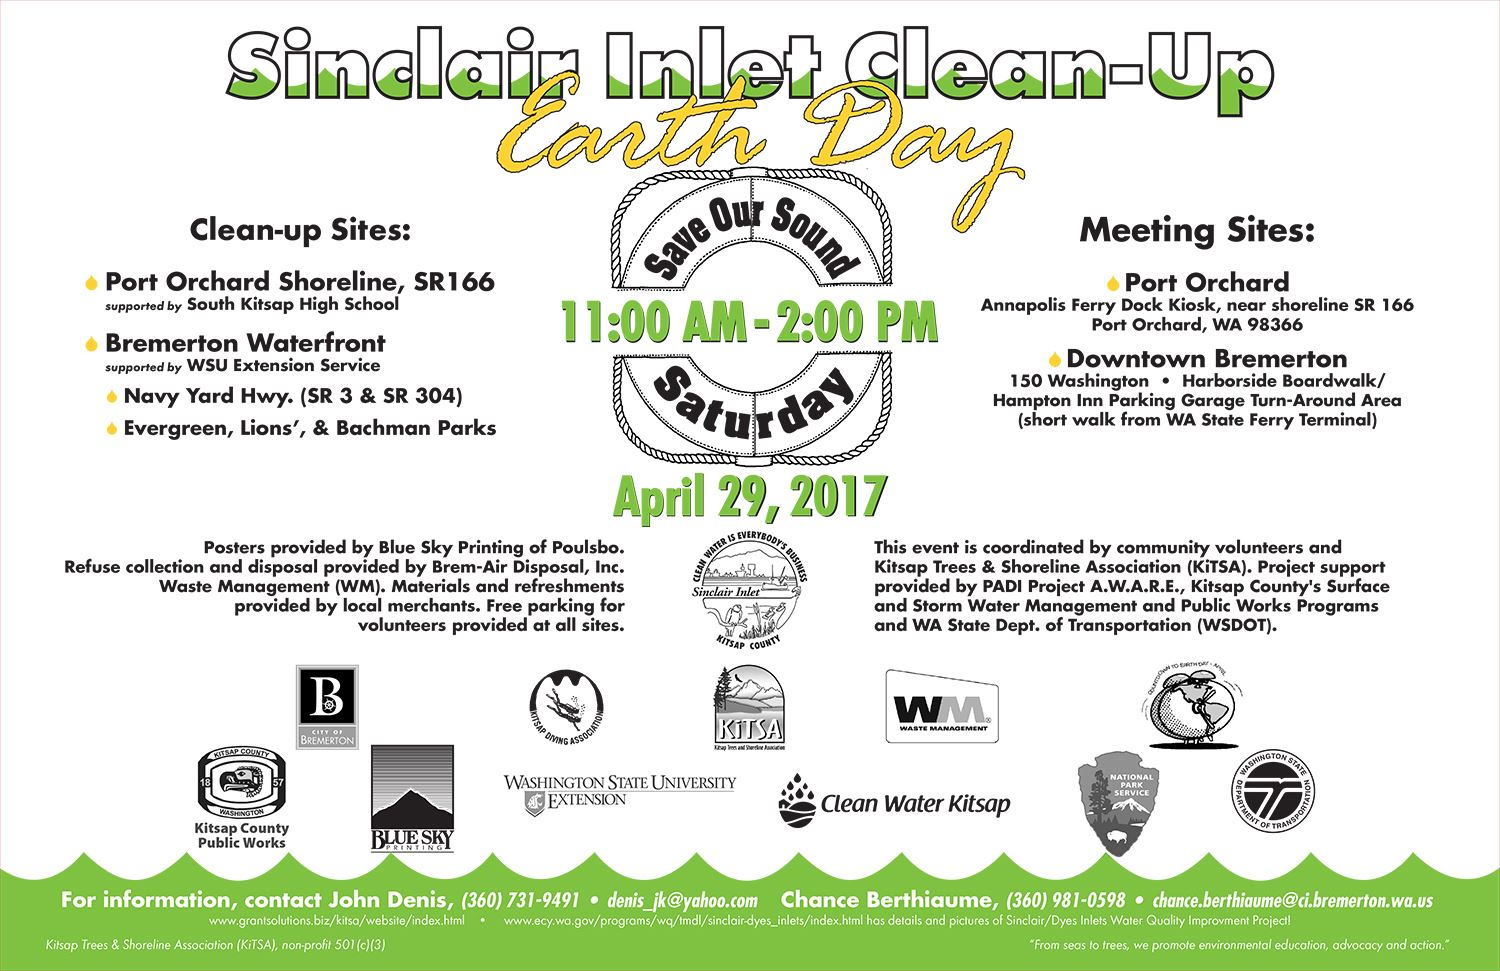 Sinclair Inlet Cleanup 2017